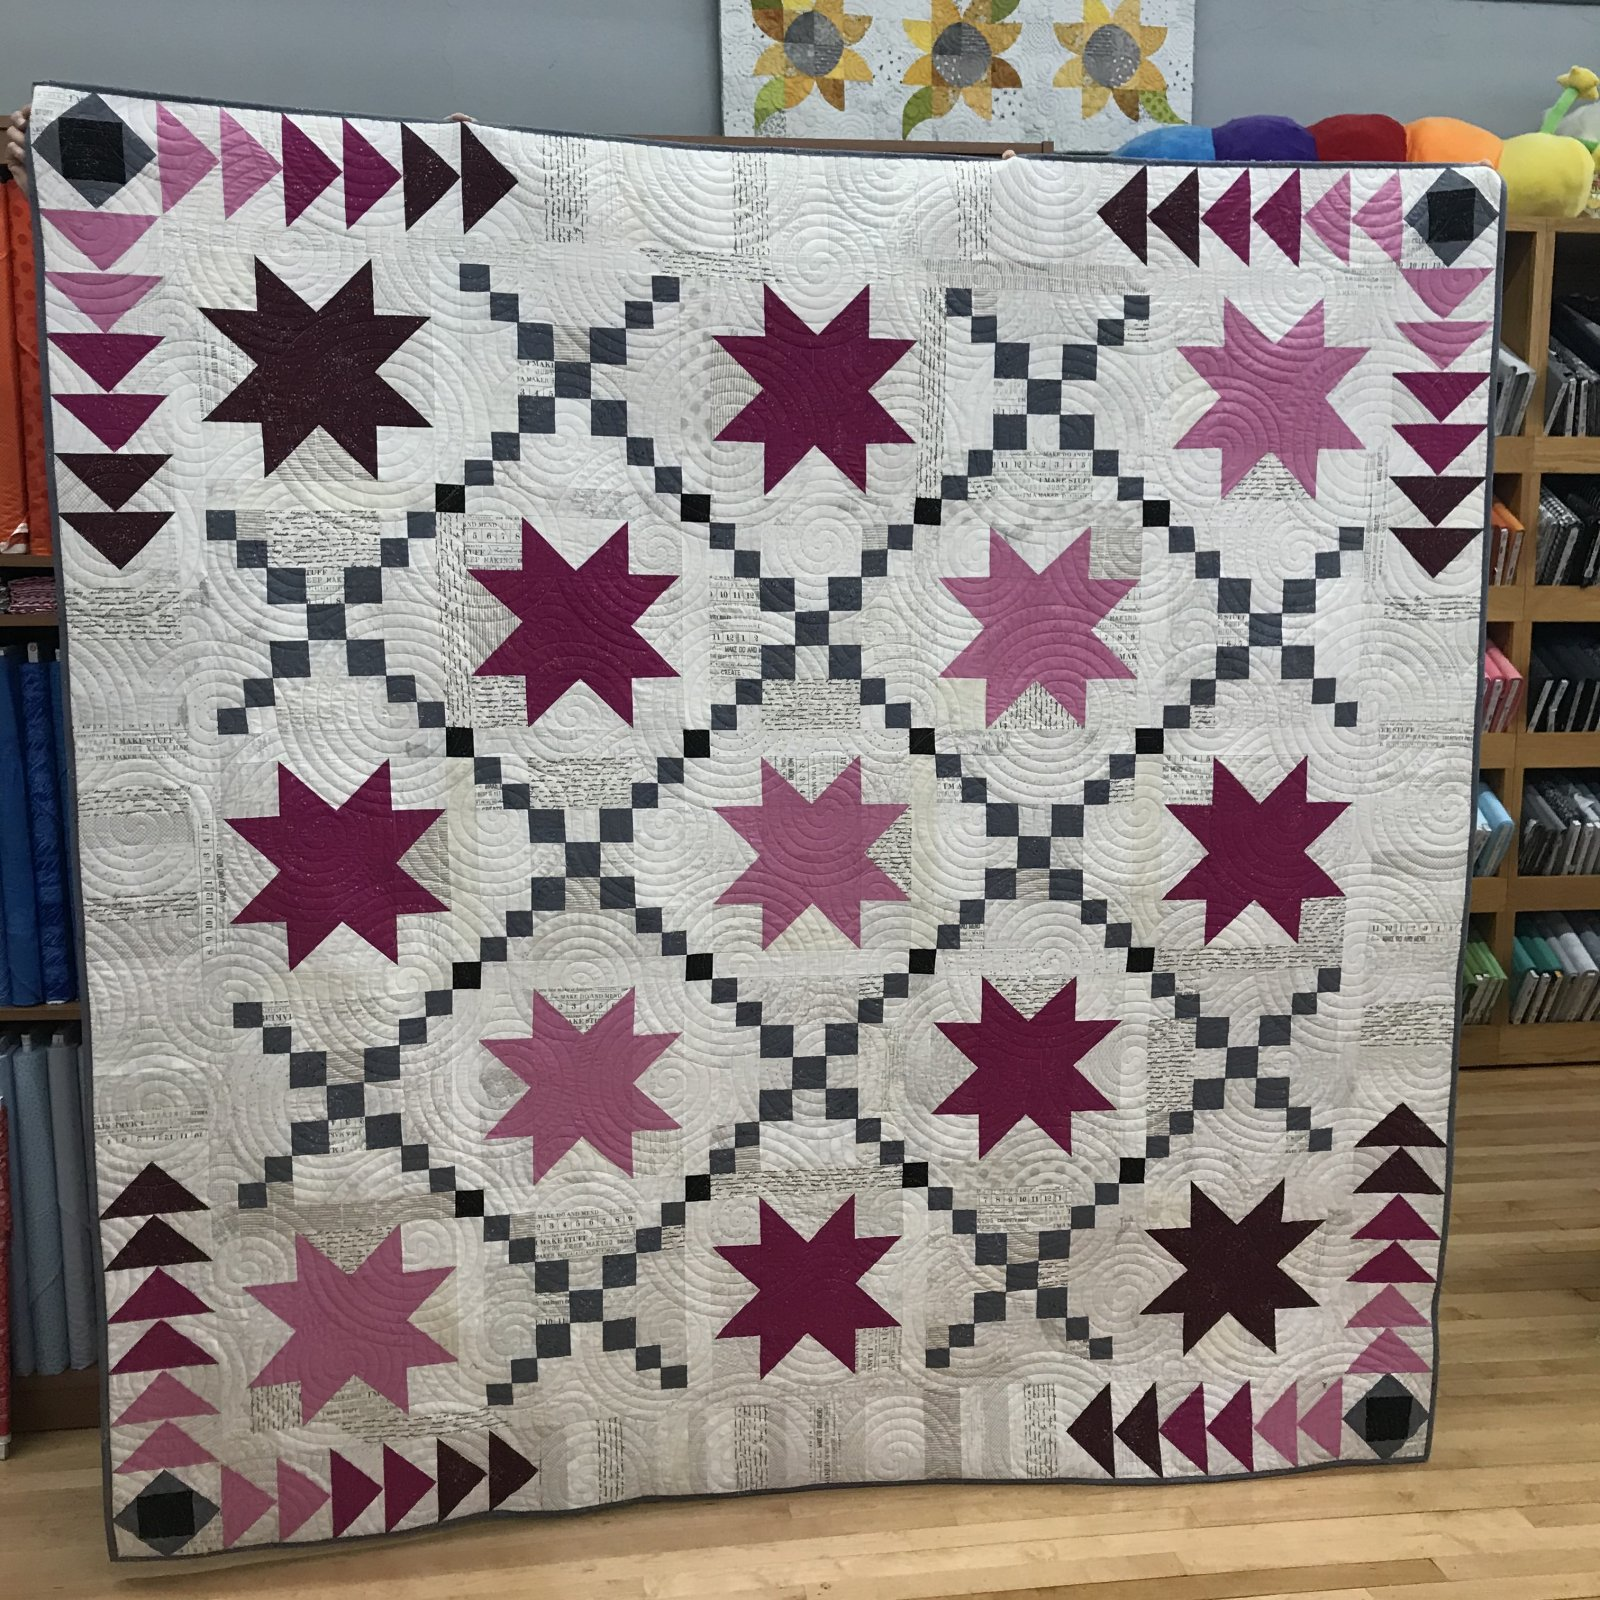 2020 Border Run Quilt Kit & Pattern for Beehive Quilt Shop